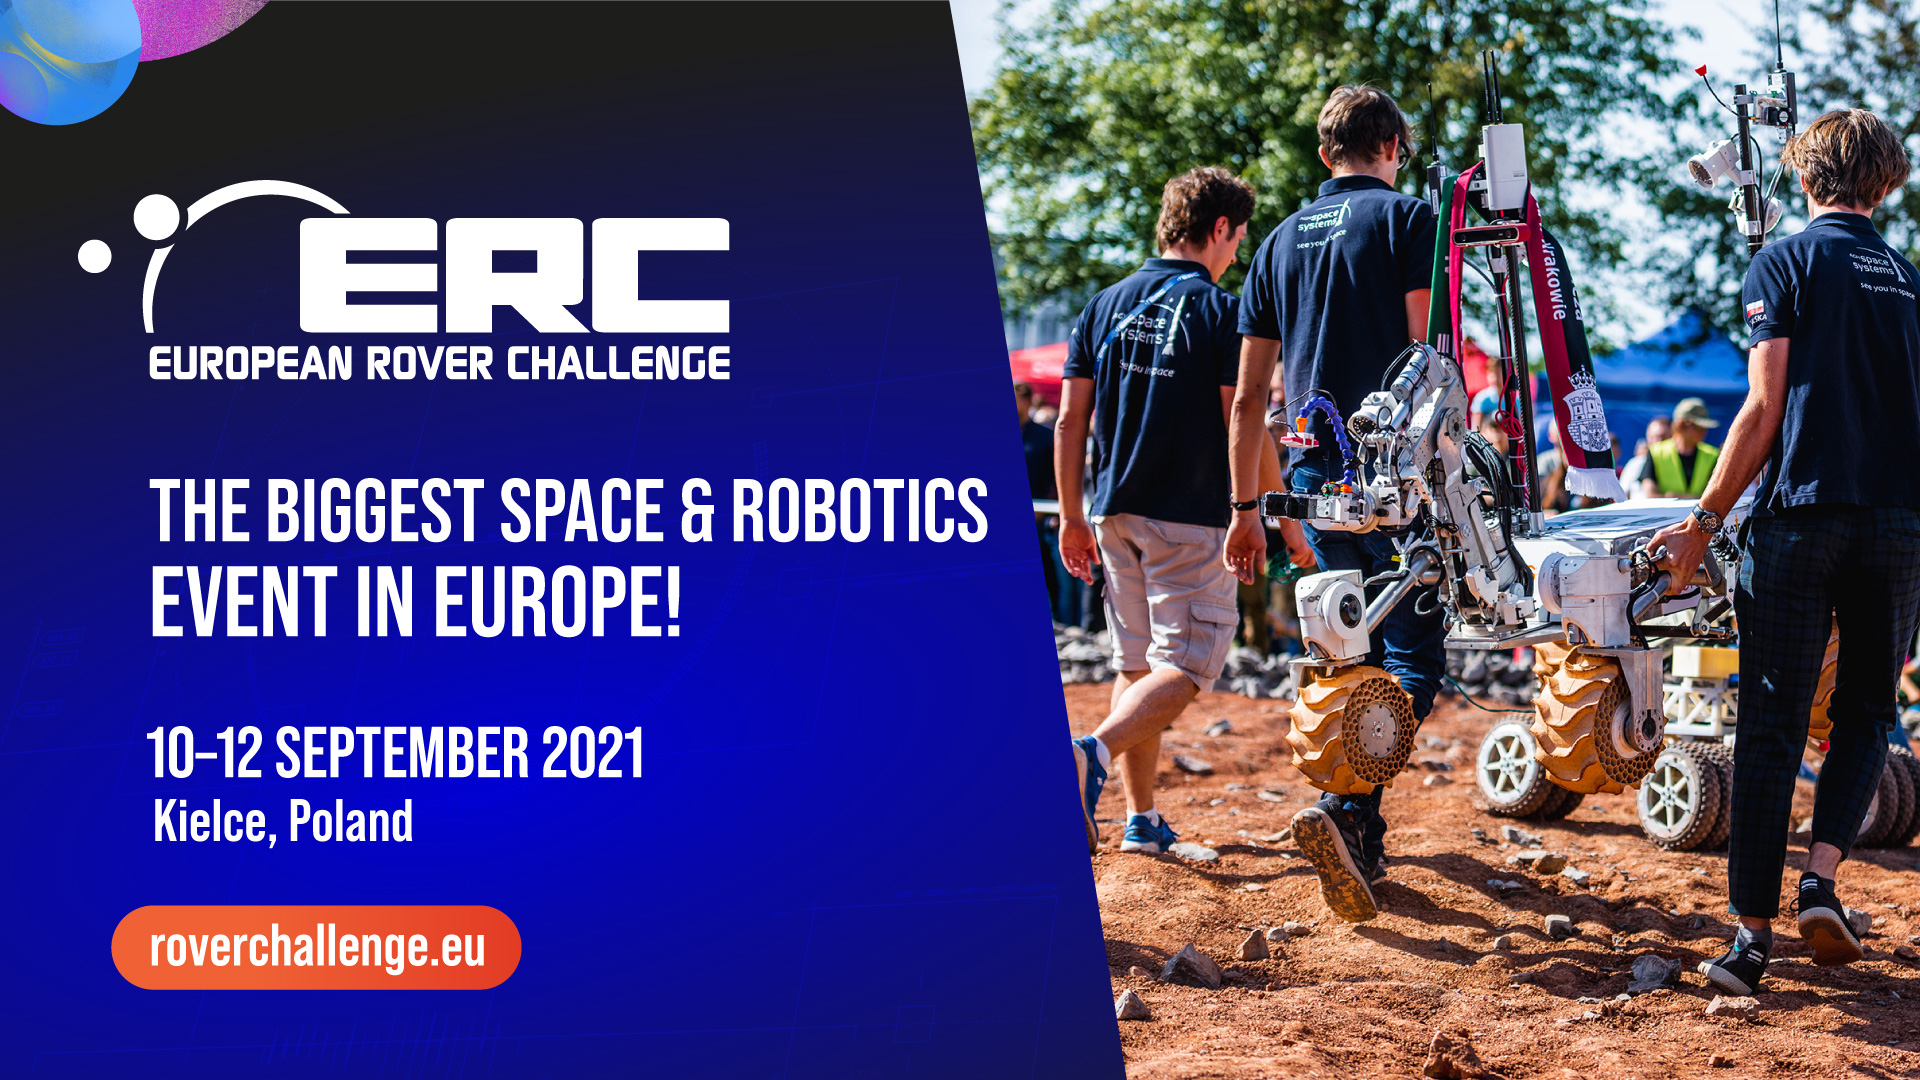 We invite you to the ERC 2021 European Rover Challenge supported technologically by PSNC